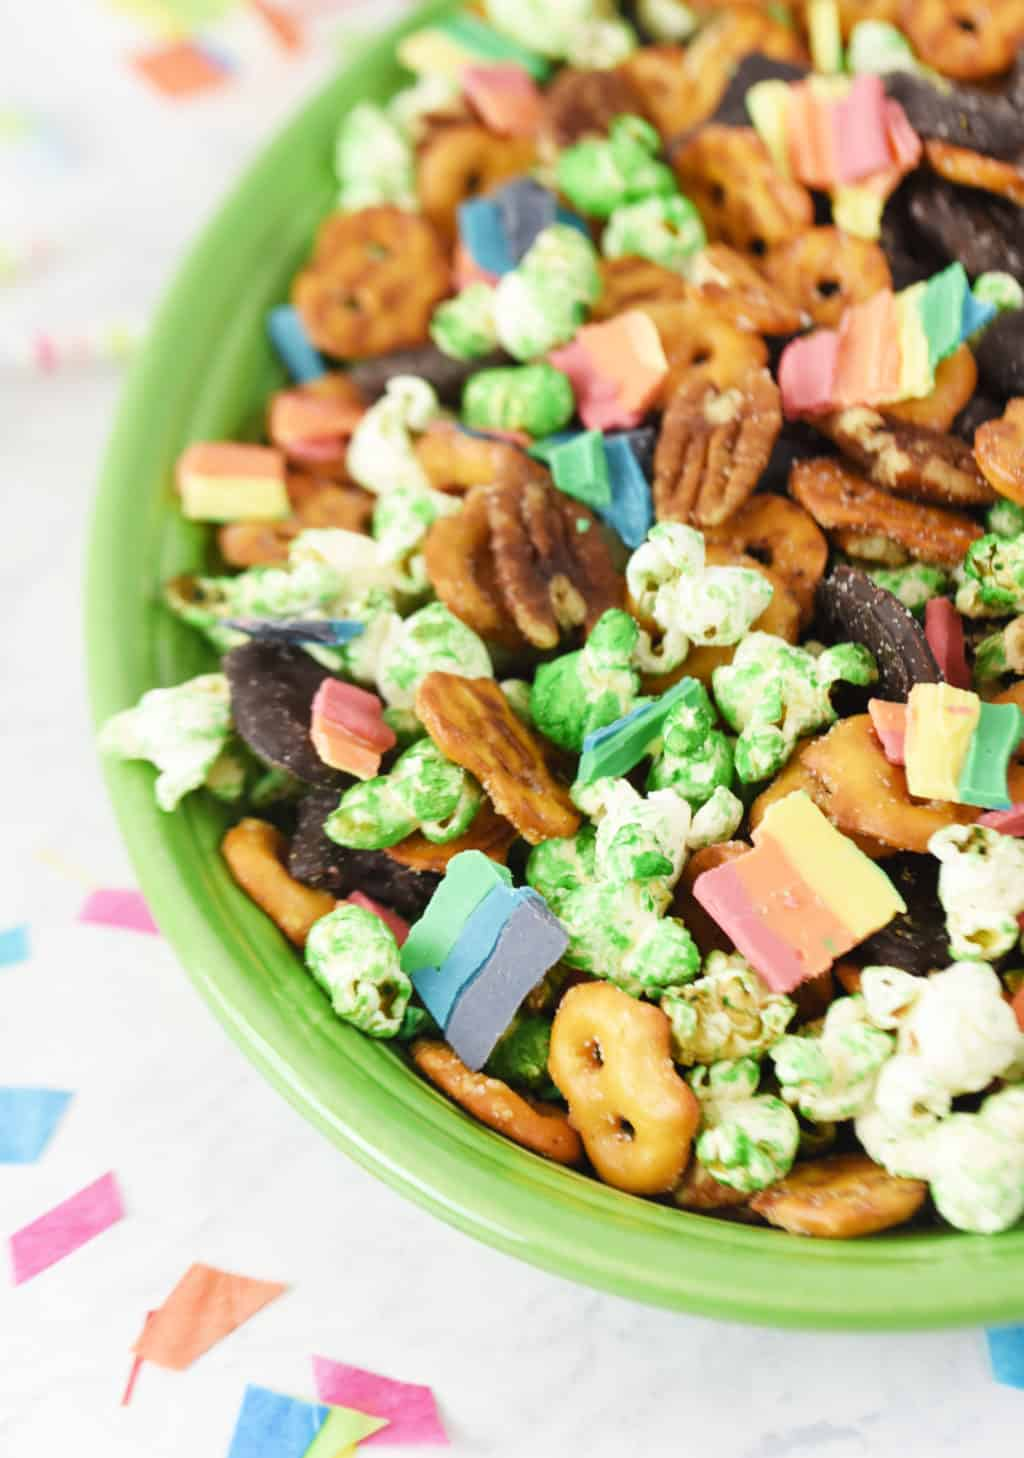 Rainbow St. Patrick's Day Snack Mix.!! Such a fun and delicious snack mix for St. Patrick's Day!